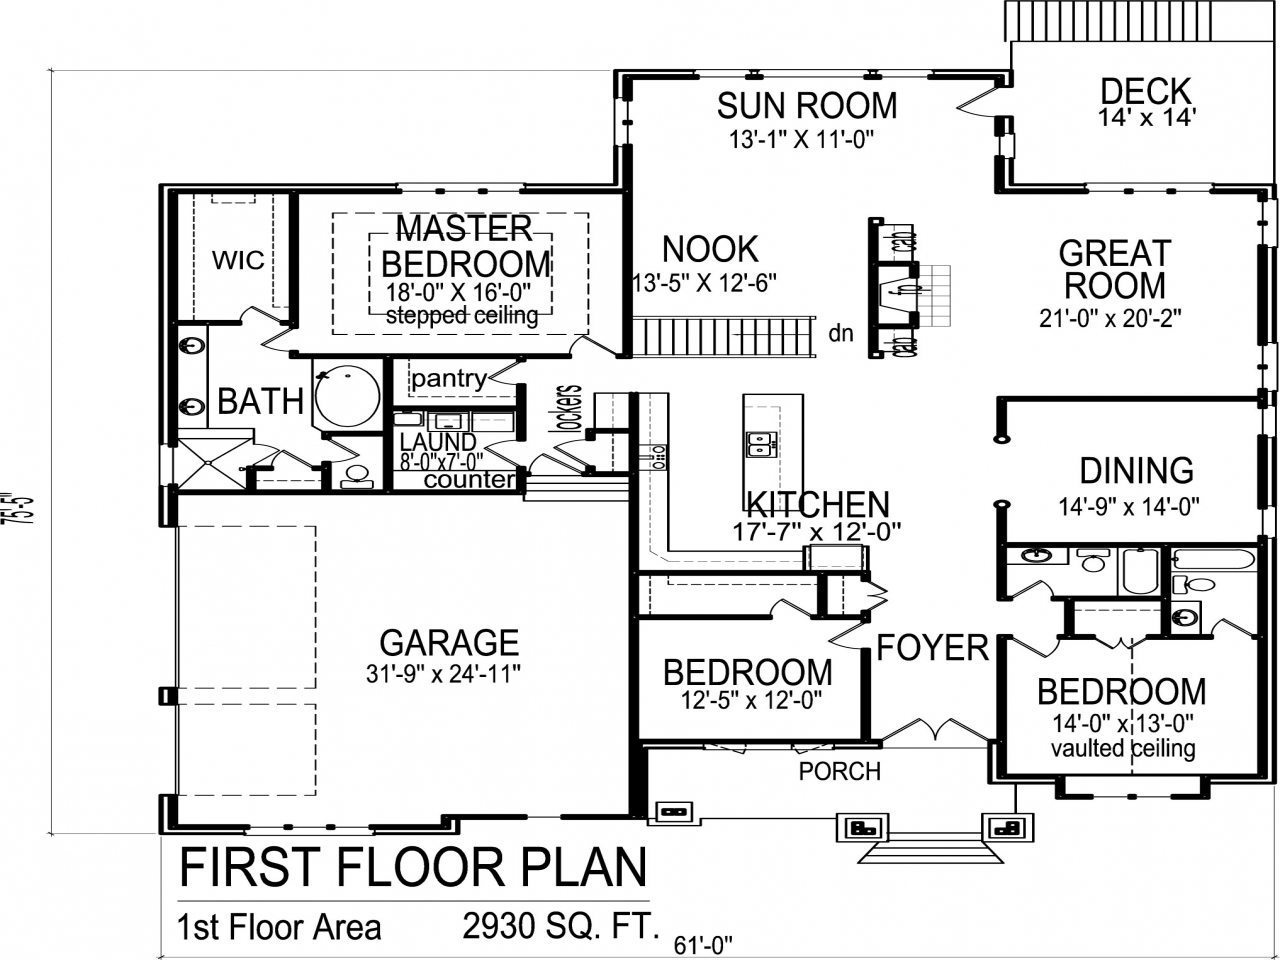 3 bedroom 2 bath house plans 1550 sq ft 3 bedroom 2 bath for 3 br 2 bath floor plans